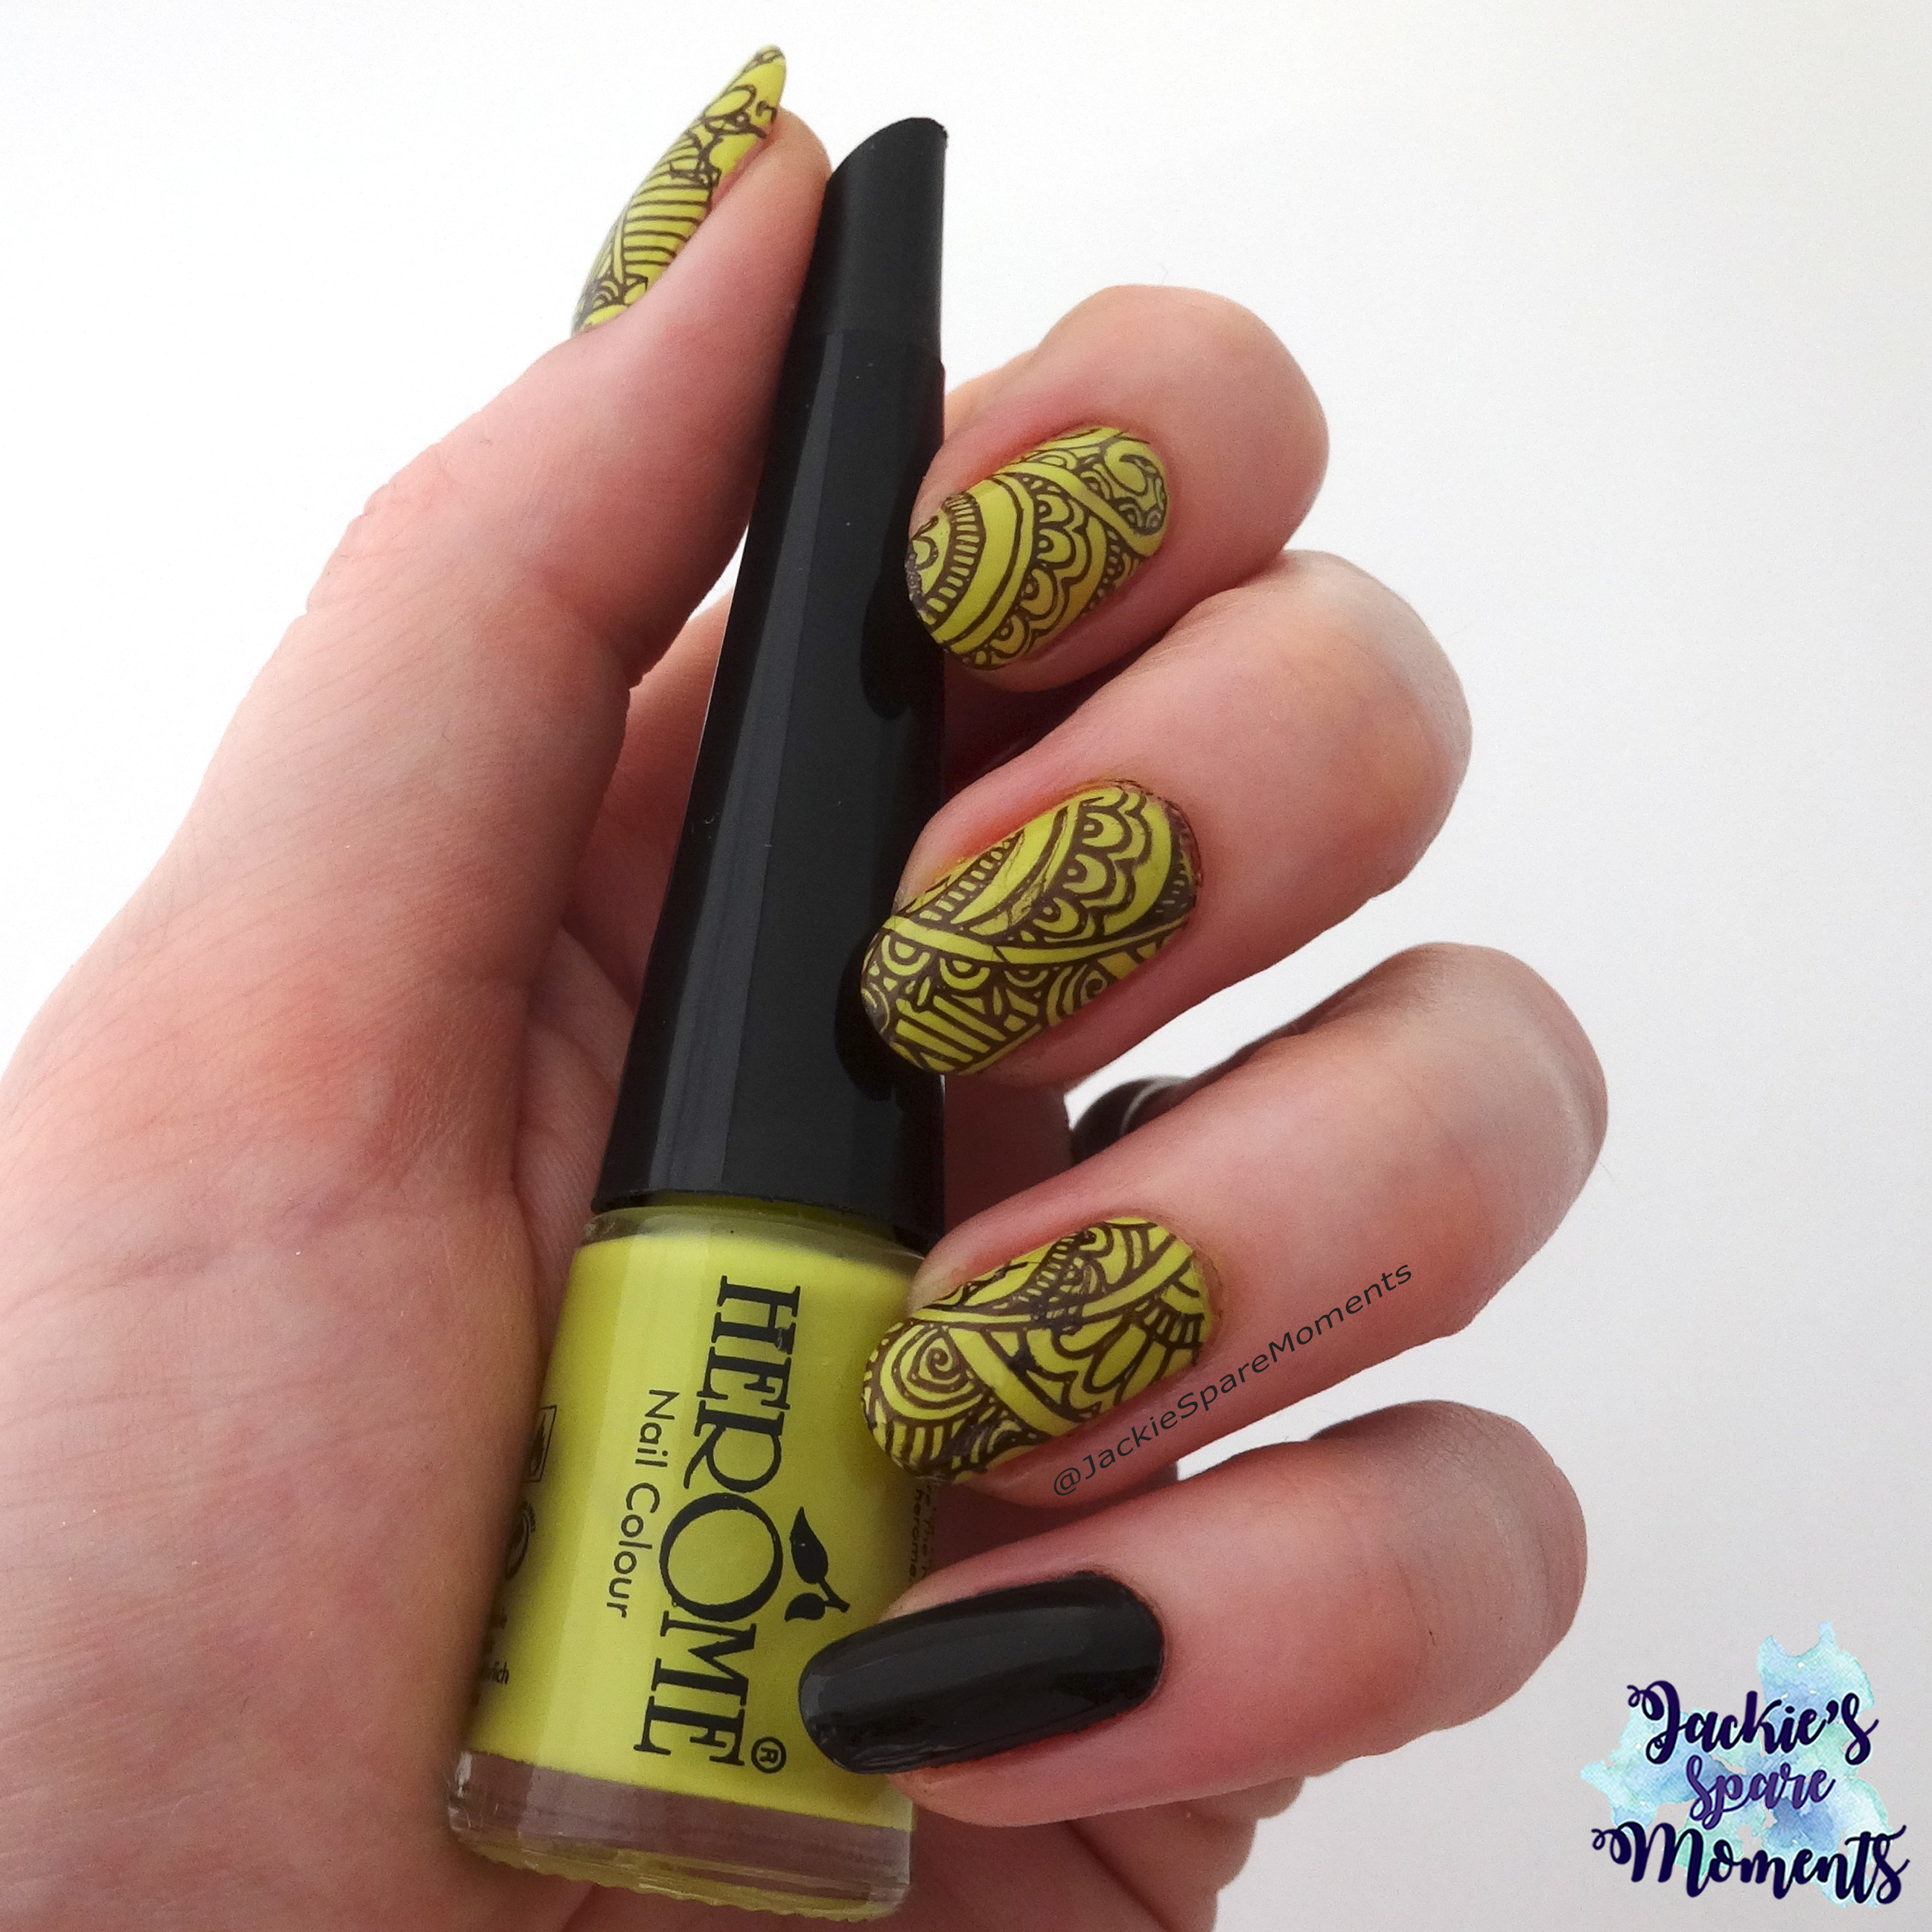 Nail art in the colours Chartreuse and Brown with Herome Nail Colour nr 58 (Chartreuse)